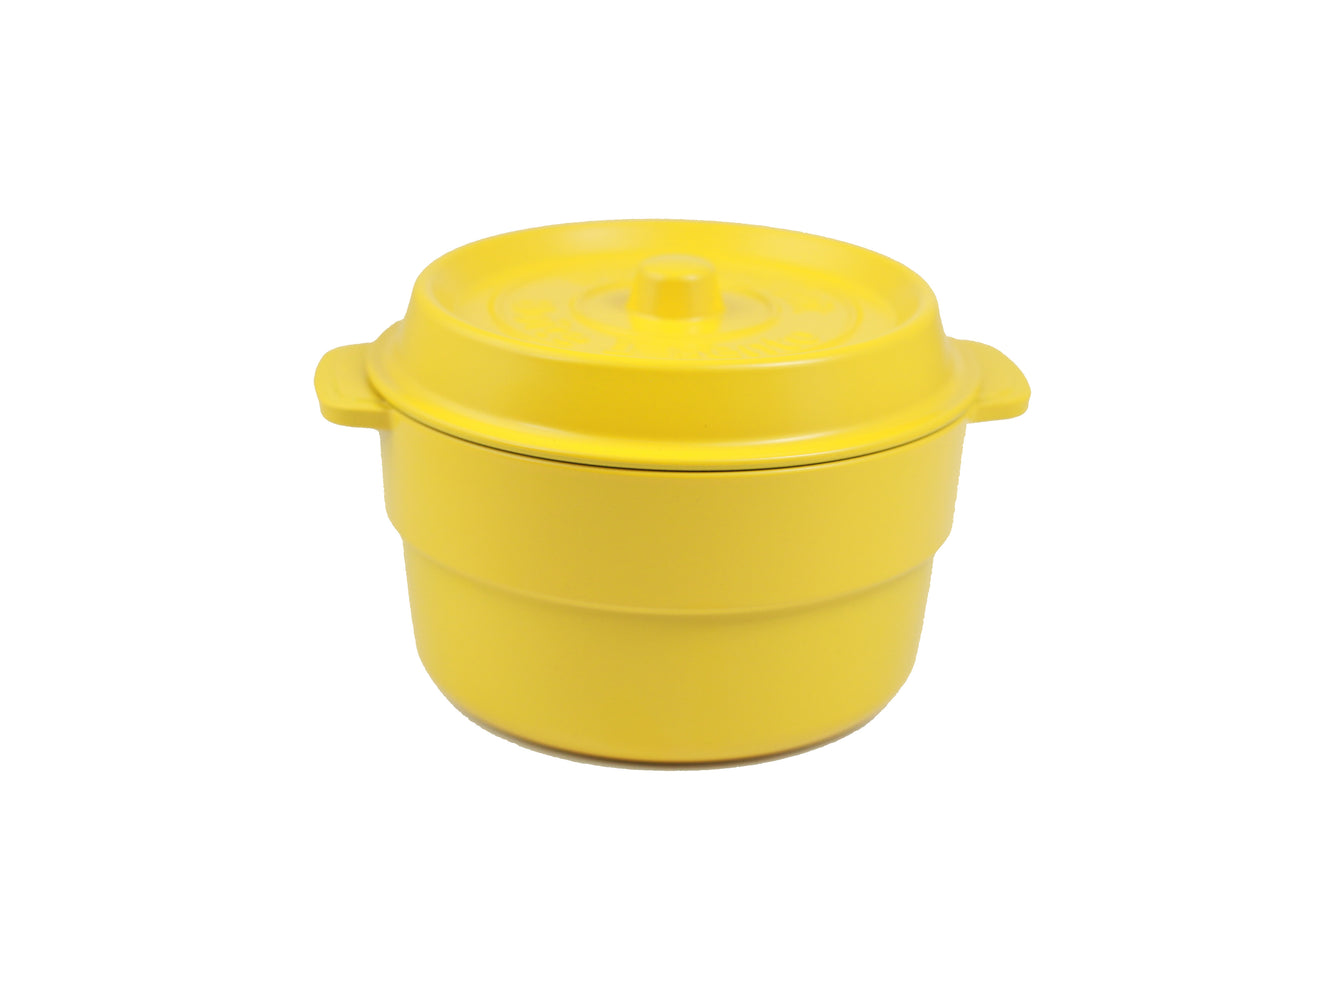 Cocopot Ronde Bento Box | Yellow by Takenaka - Bento&con the Bento Boxes specialist from Kyoto